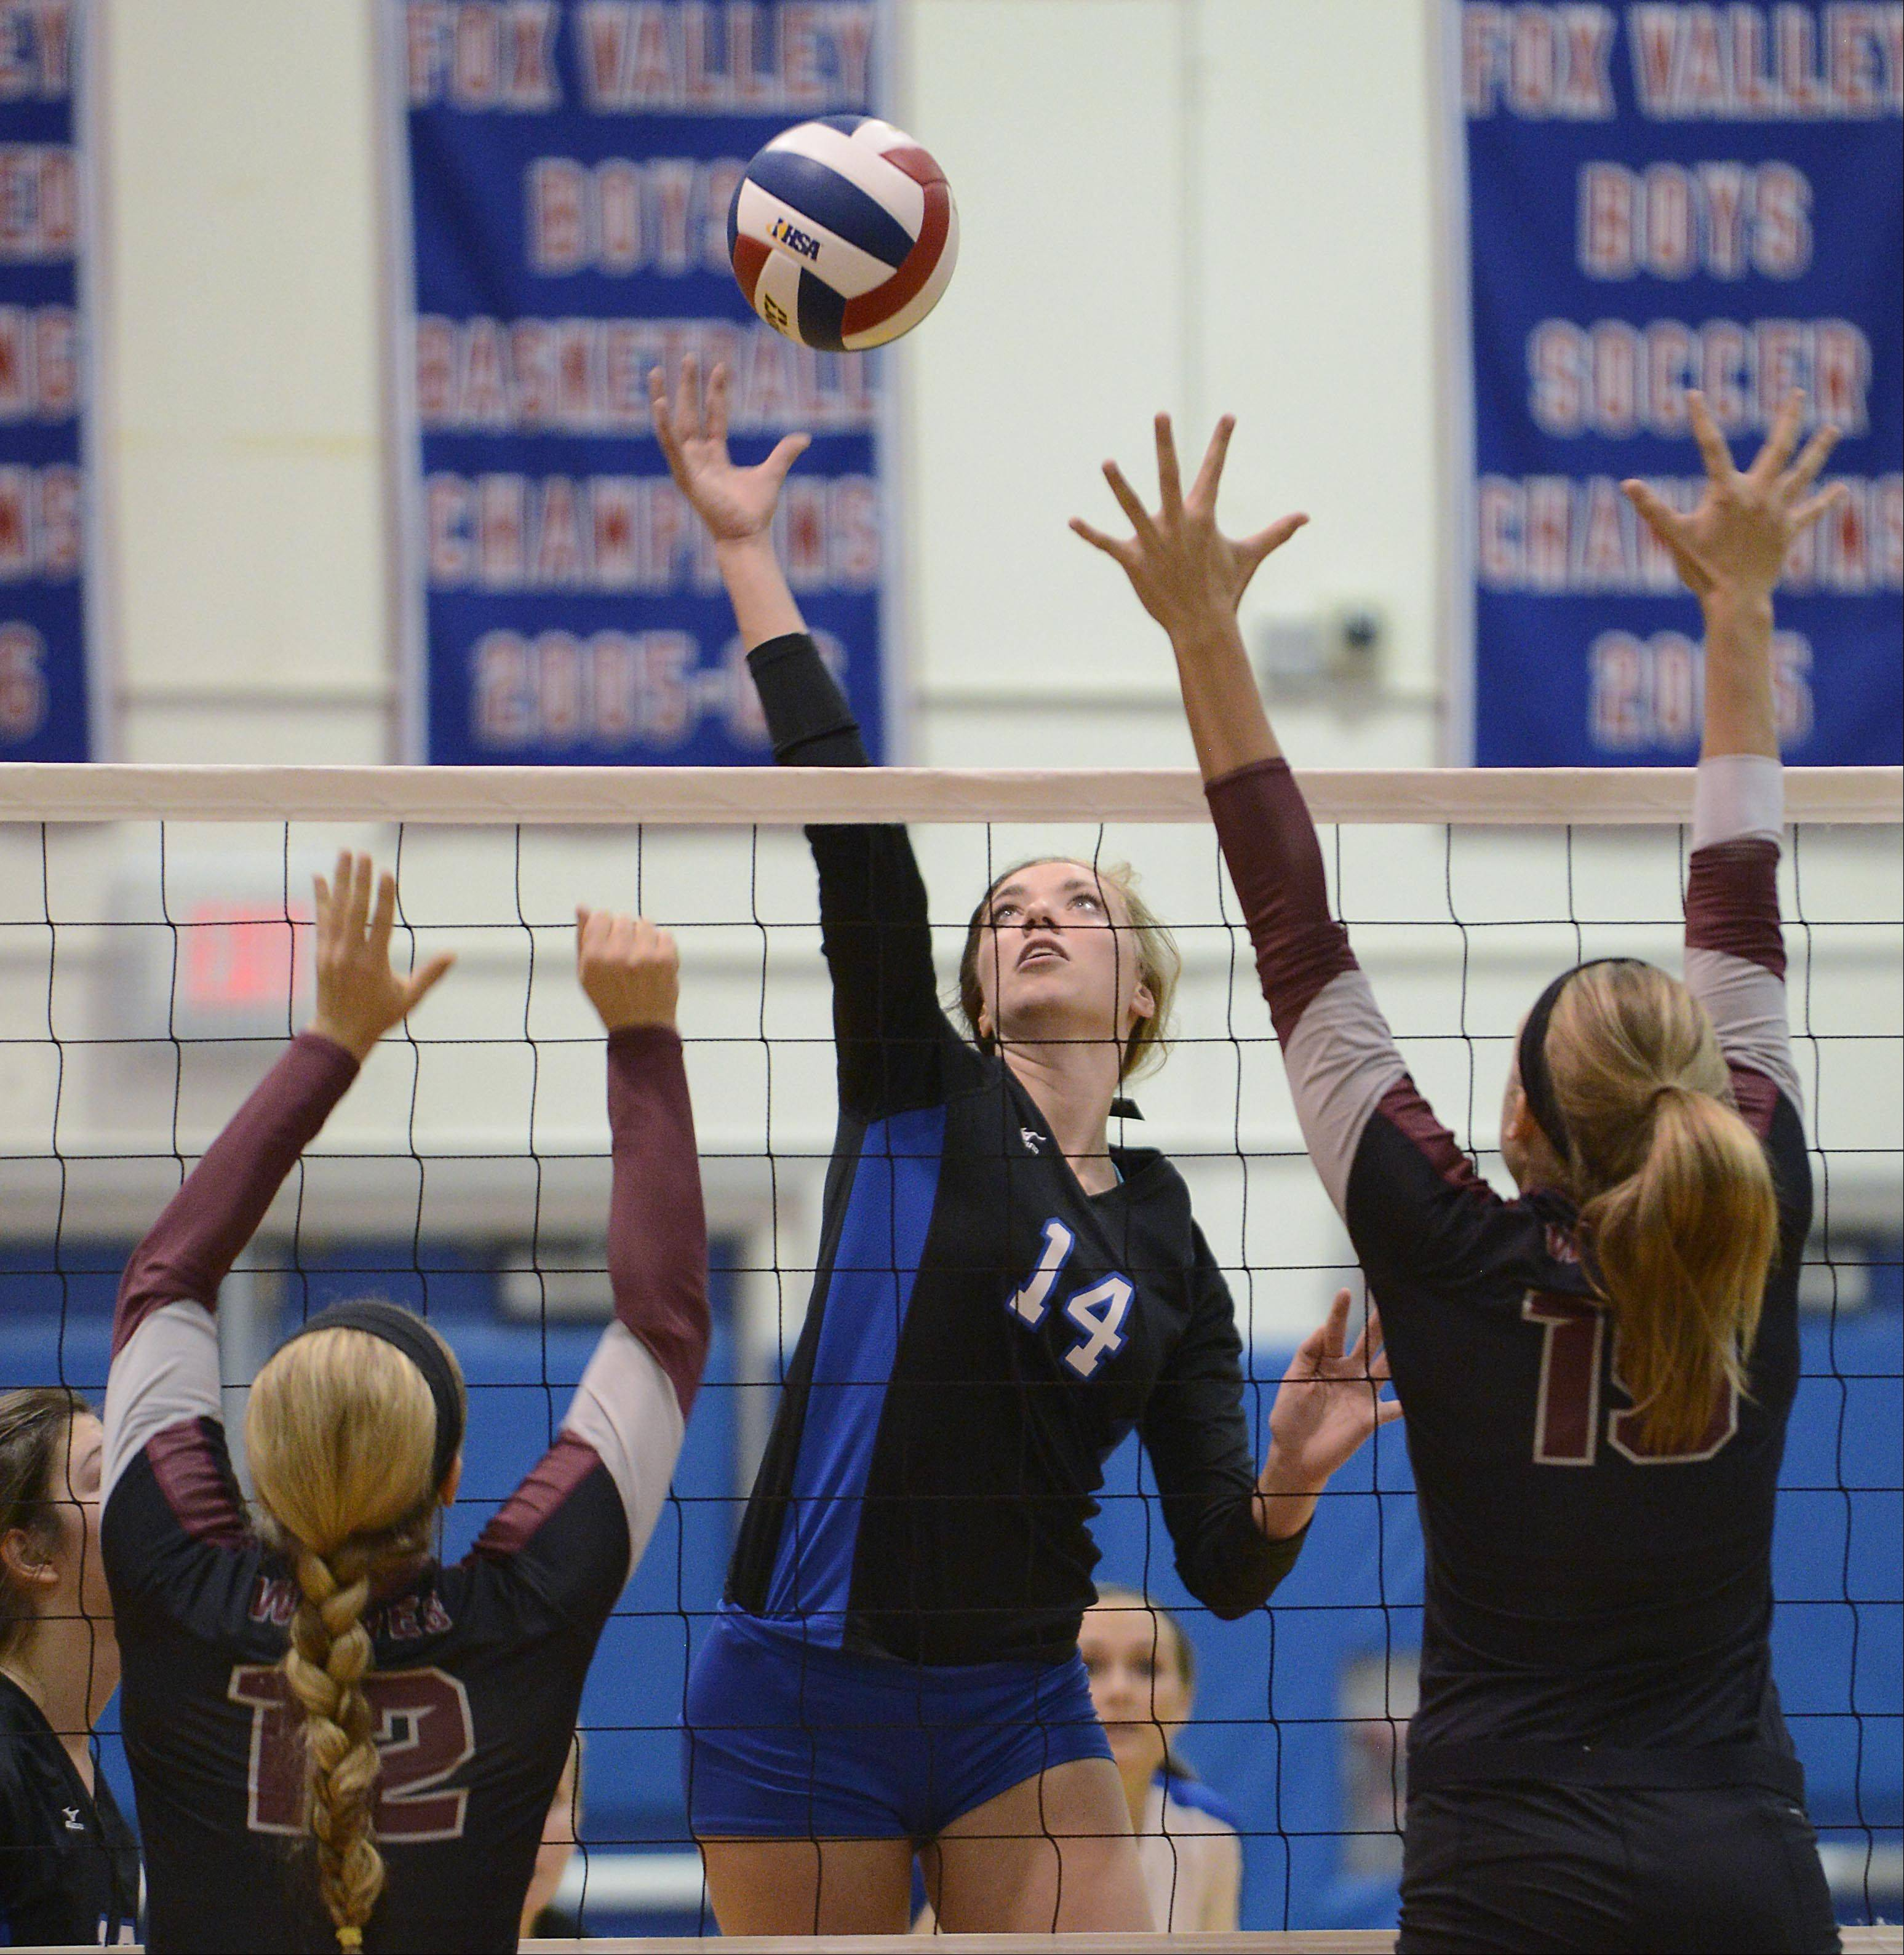 Dundee-Crown's Emily Michalski hits to the defense of Prairie Ridge's Charli Beam and Ali Witt, right, Monday in Carpentersville.